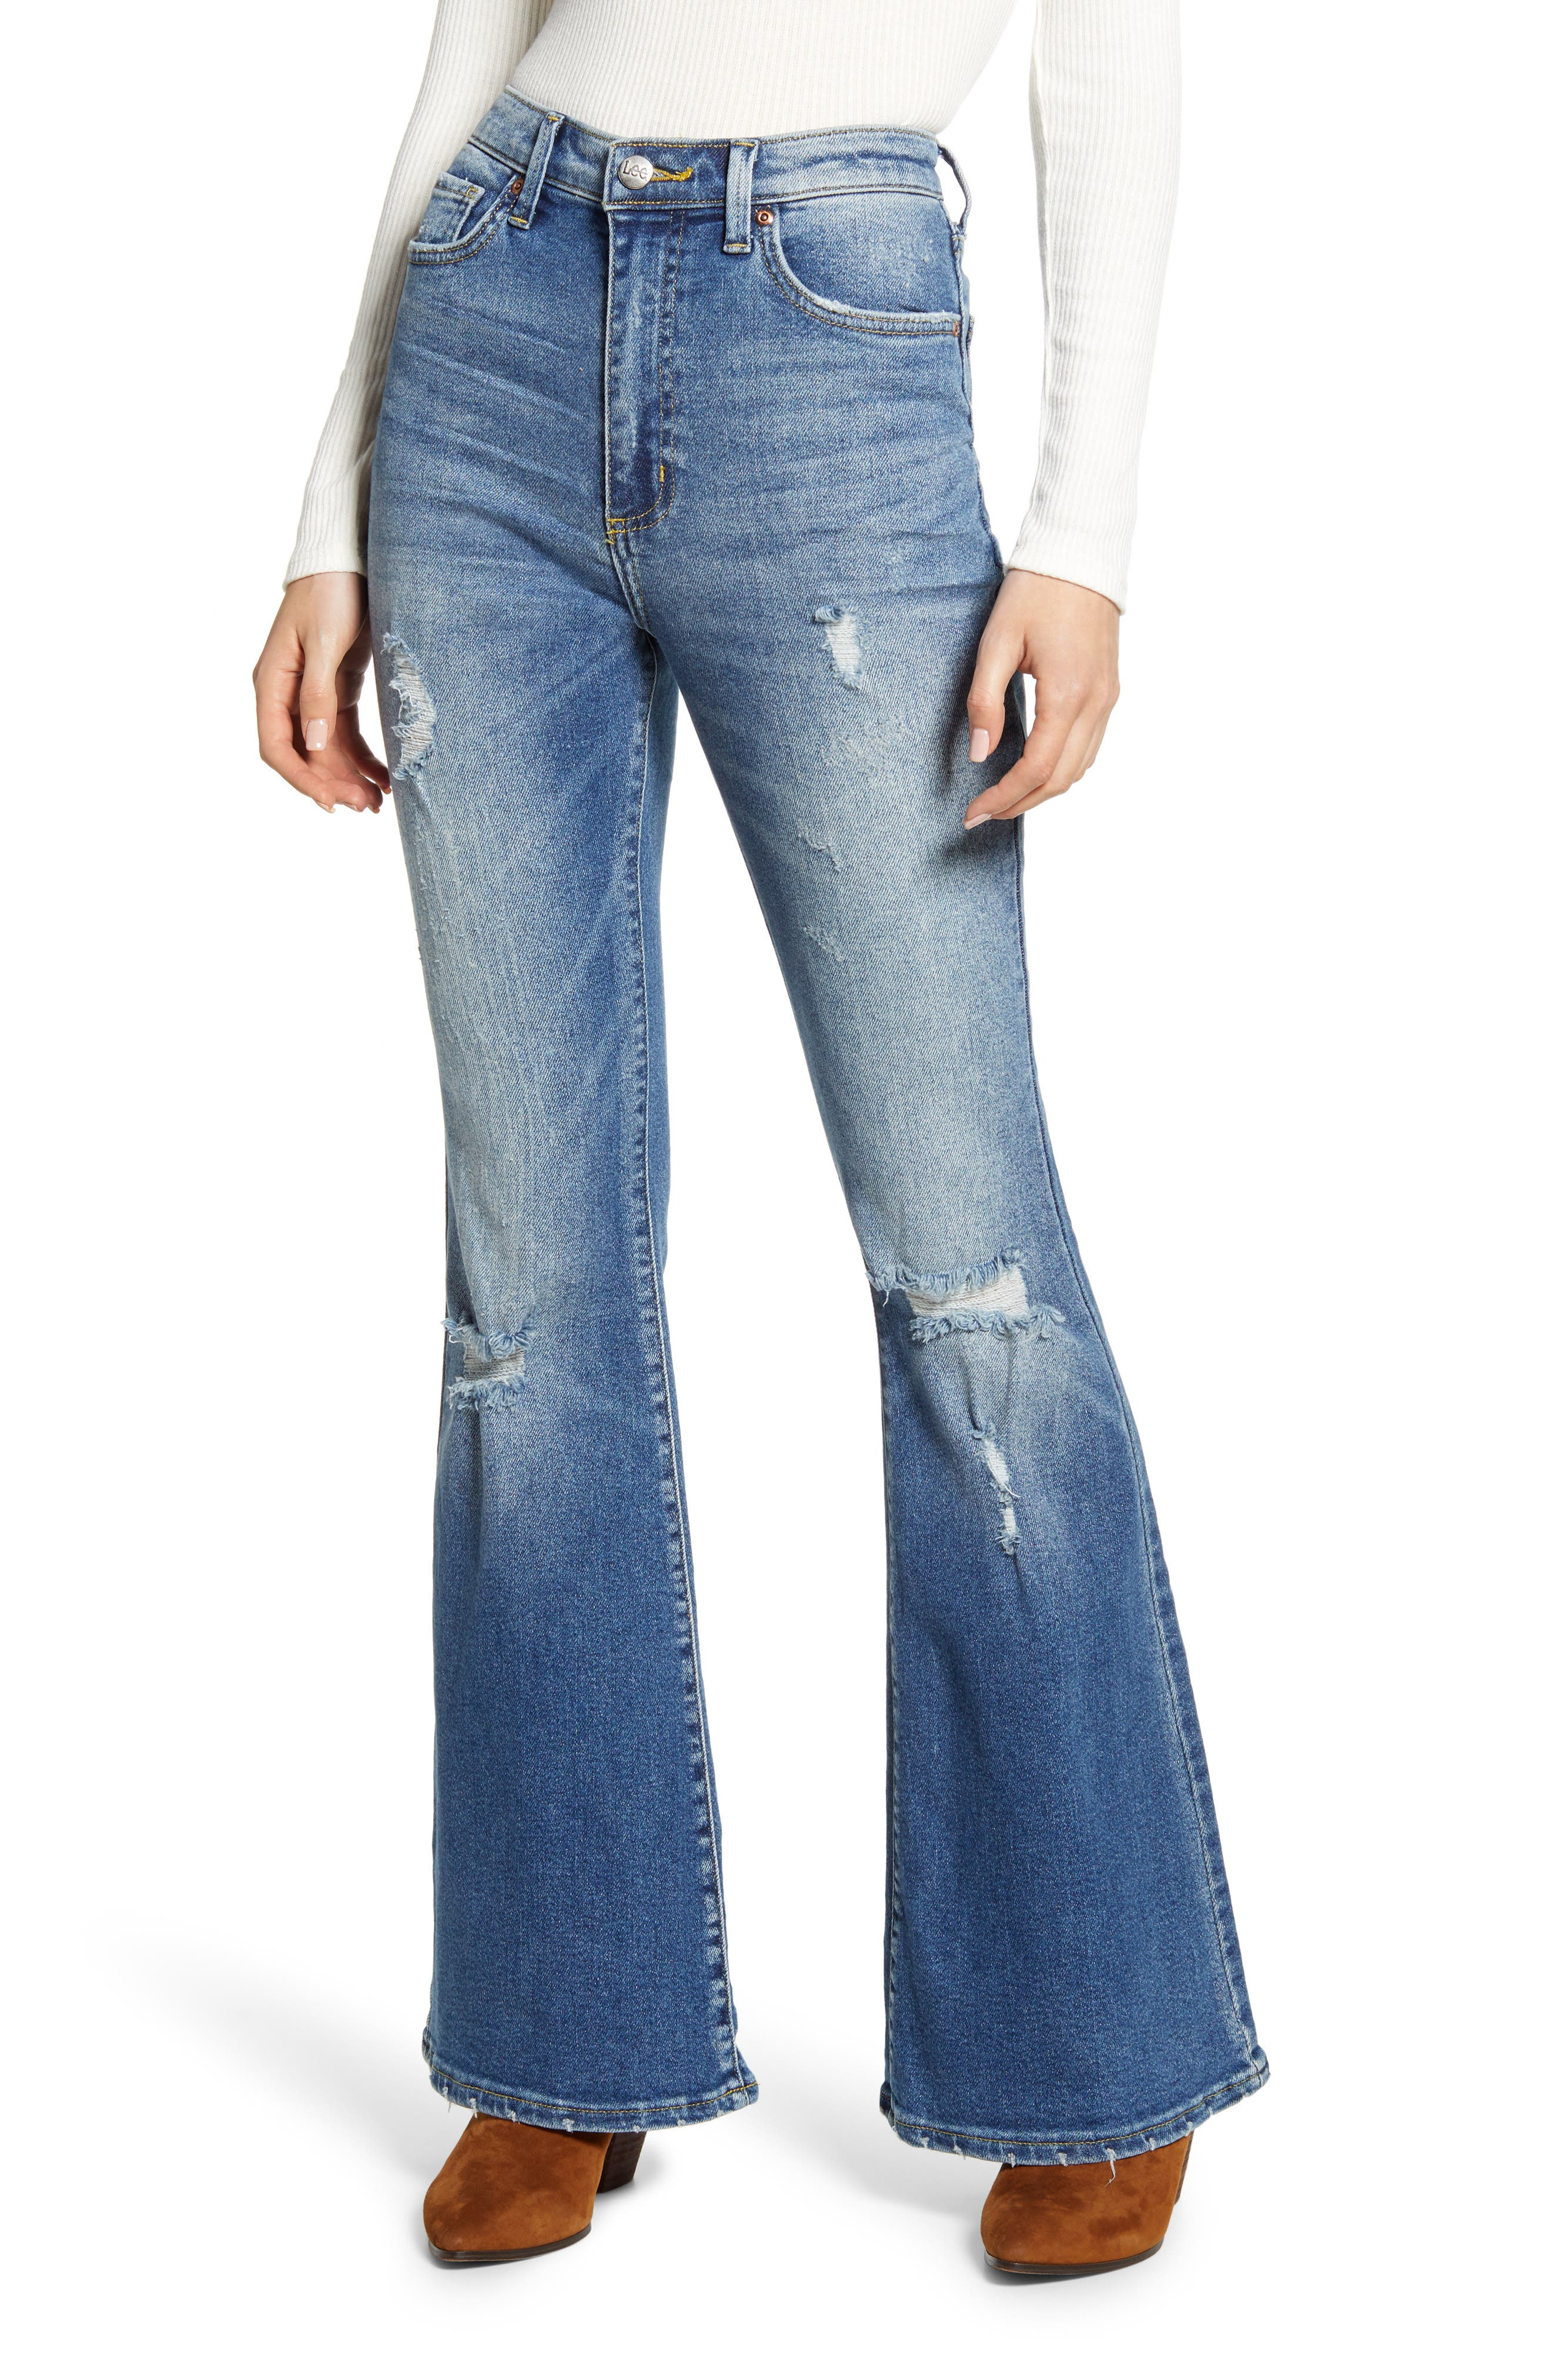 60s – 70s Pants, Jeans, Hippie, Bell Bottoms, Jumpsuits Womens Lee Distressed High Waist Flare Jeans $98.00 AT vintagedancer.com